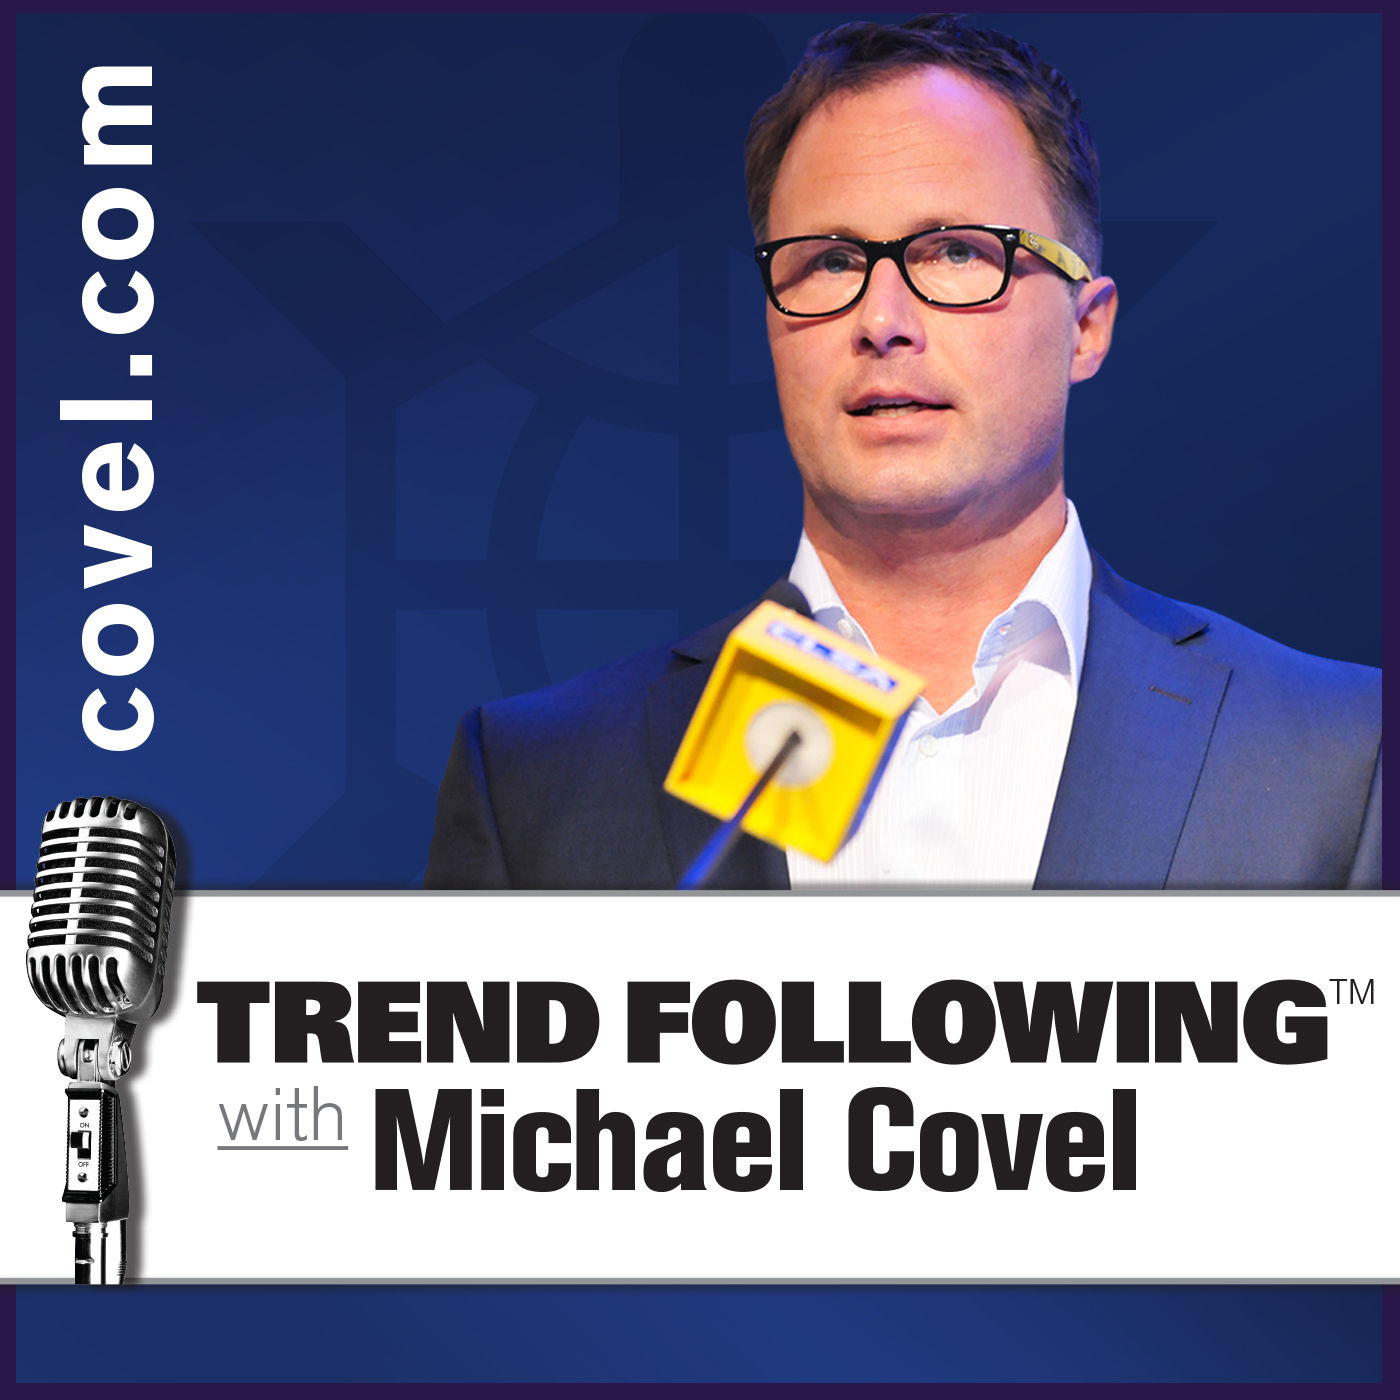 Ep. 479: Zen DeBrucke Interview with Michael Covel on Trend Following Radio